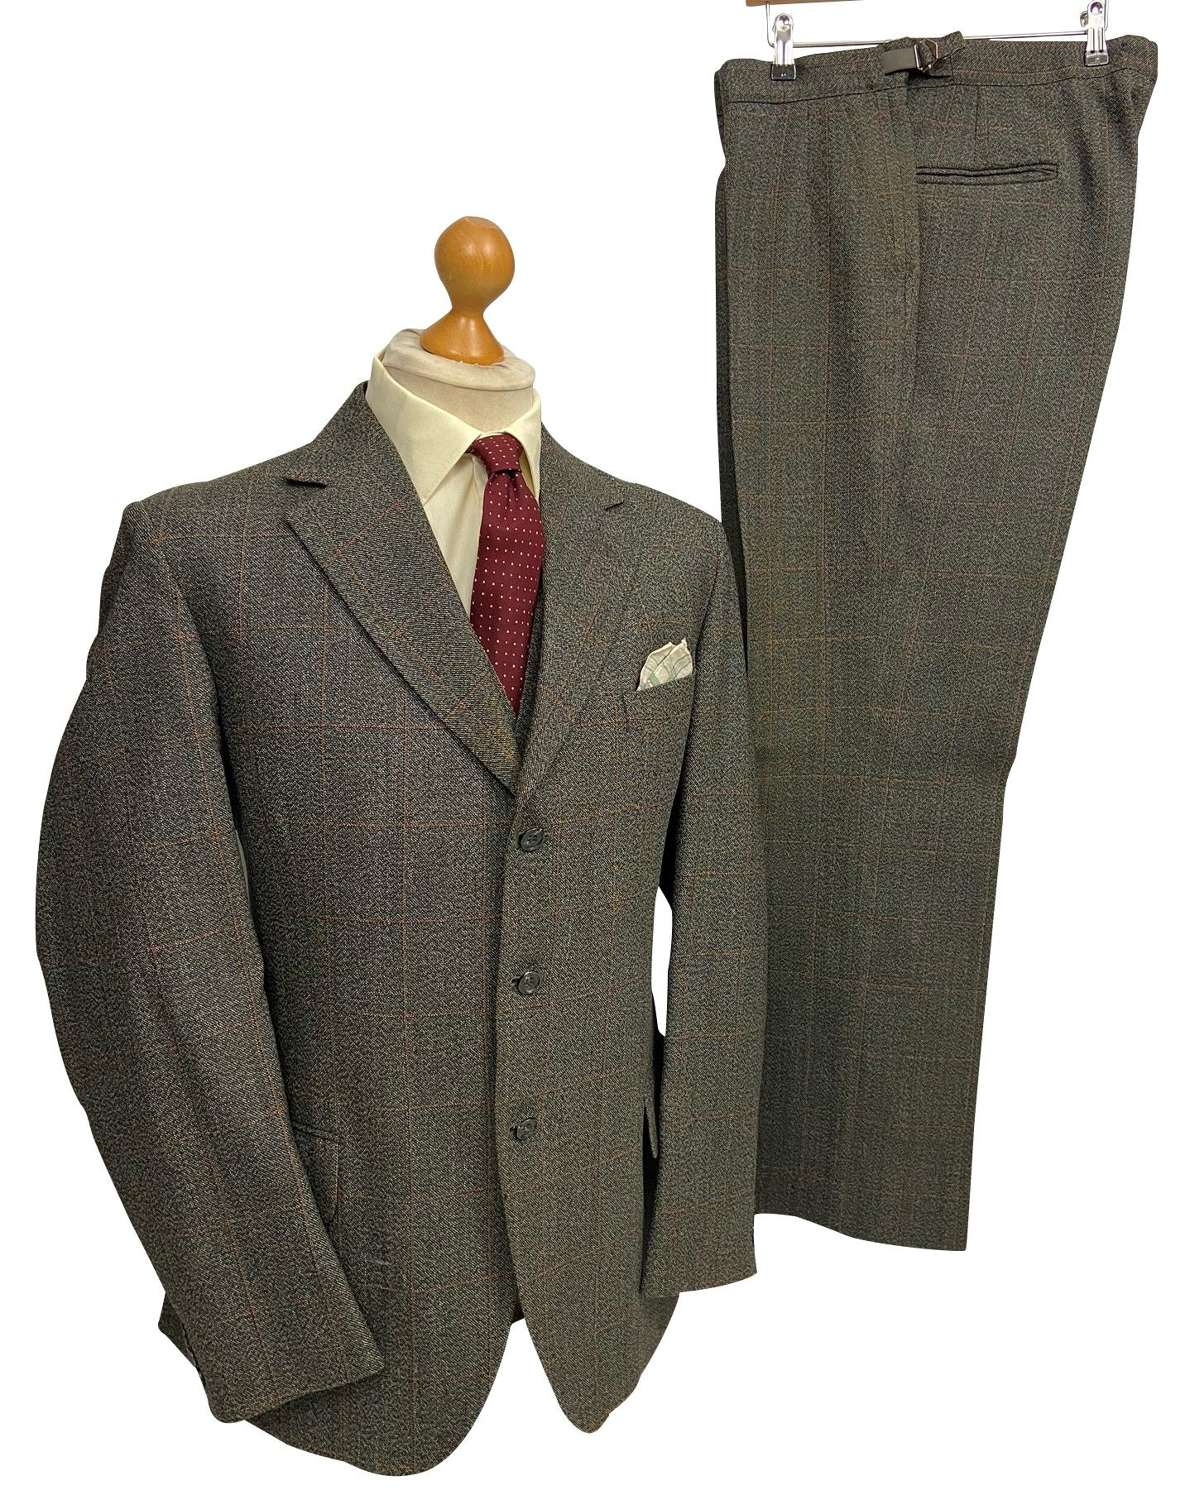 Original 1960s Grey Windowpane Check 3 Piece Men's Suit by 'Dunn & co'